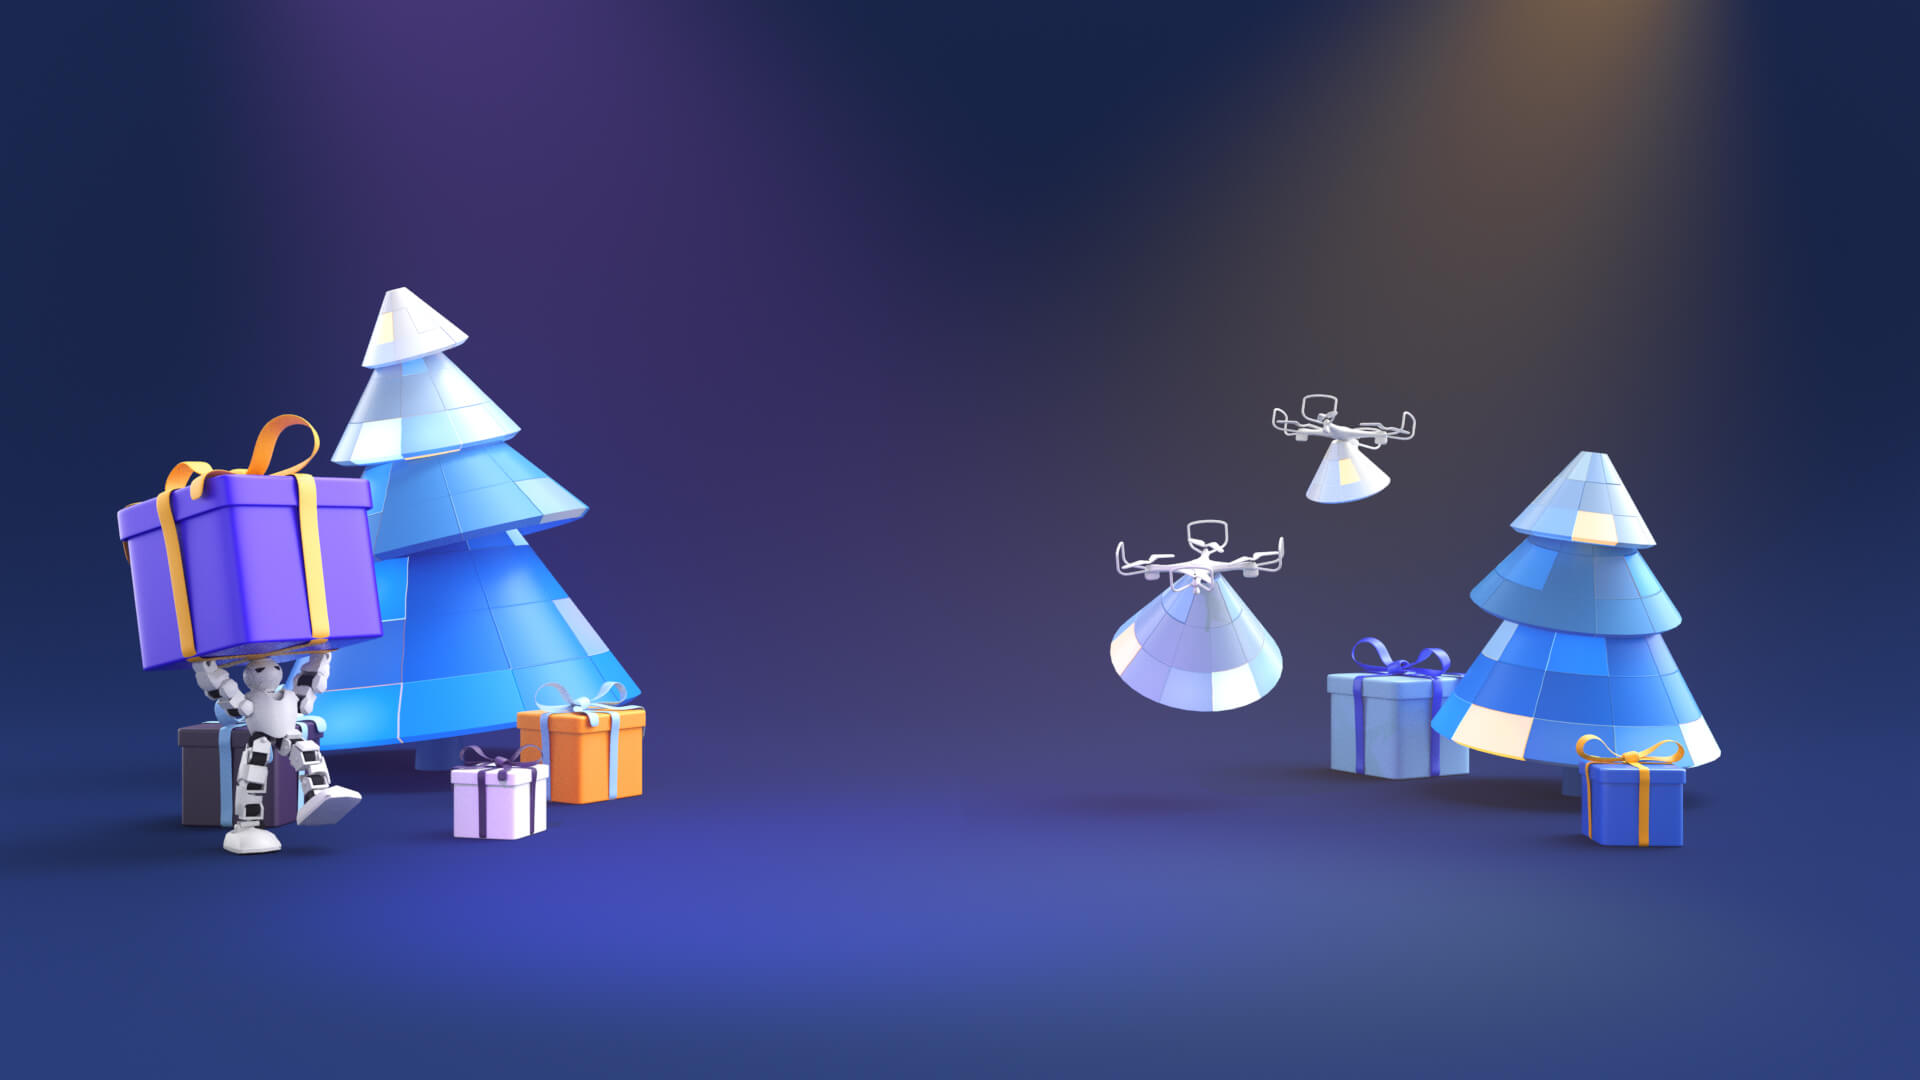 3D toon decorative background in a Christmas theme